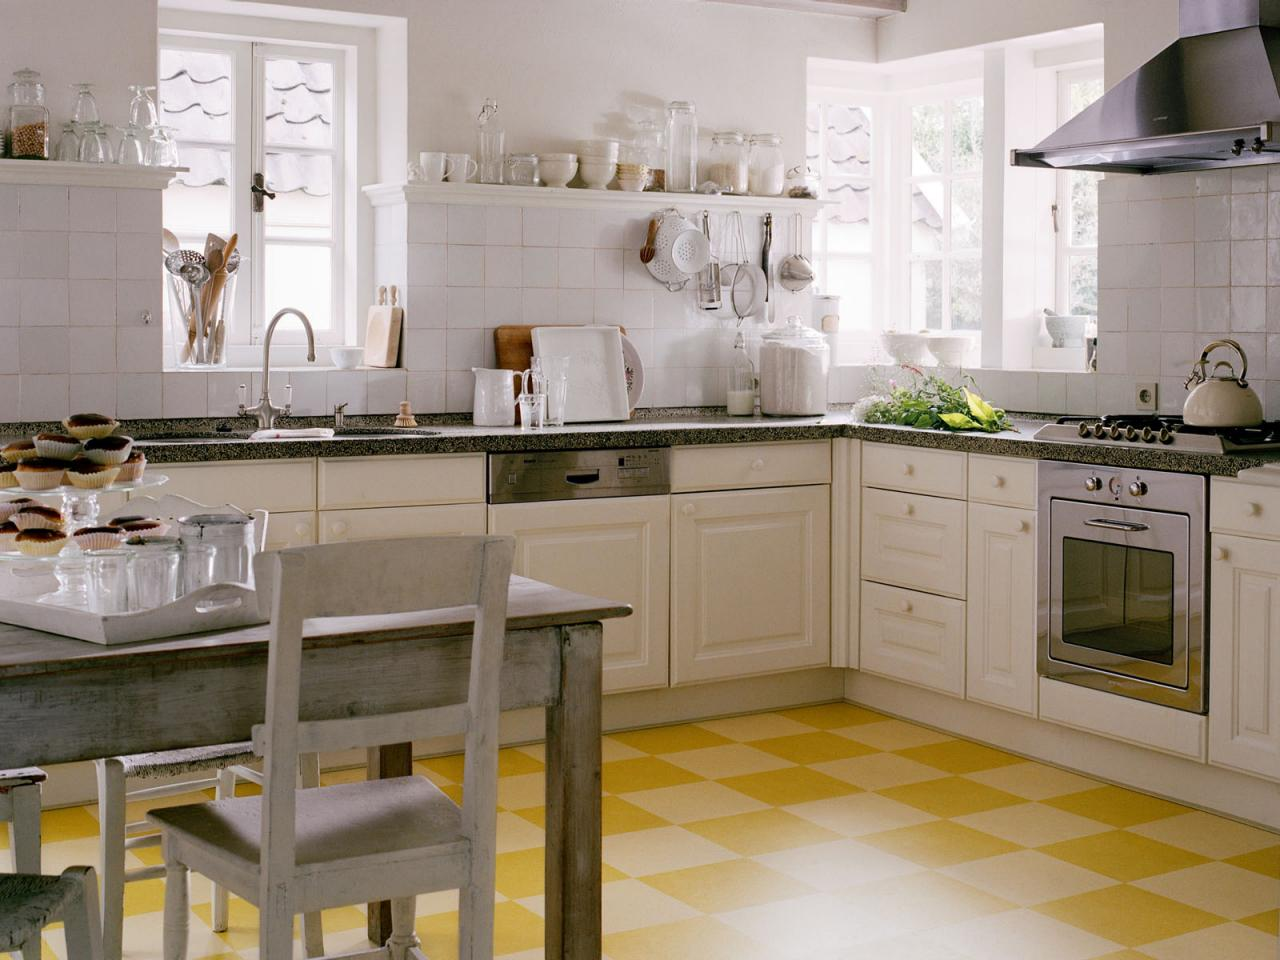 What is the best flooring for my rental property cribspot image source dailygadgetfo Gallery